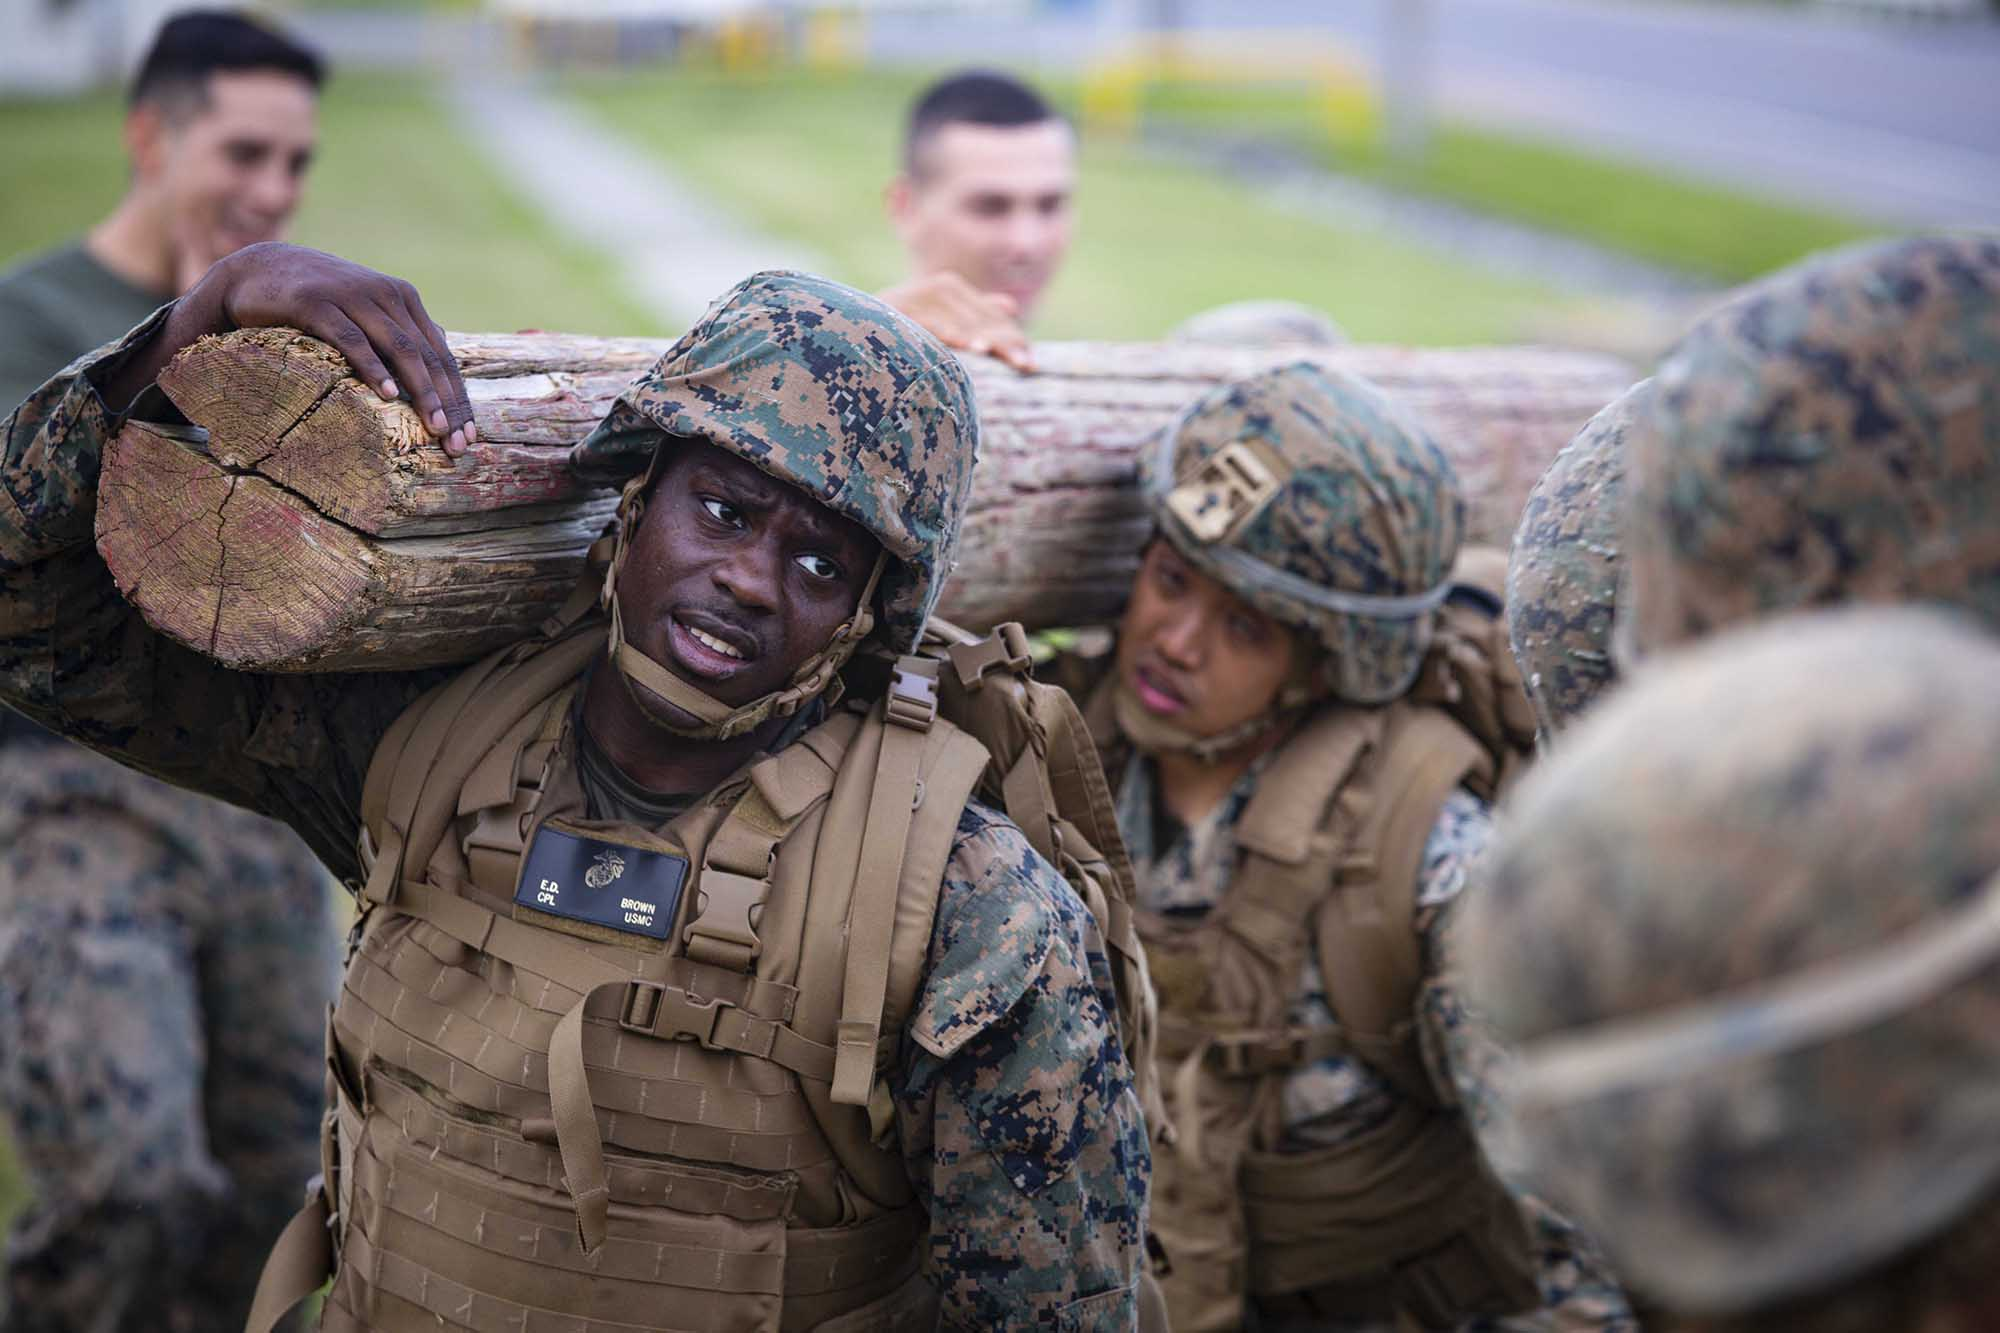 Cpl. Elbert Brown carries a log during the culminating event of the Marine Corps Martial Arts Program Instructor Course April 9, 202, on Marine Corps Air Station Futenma, Okinawa, Japan.(Staff Sgt. Lucas Vega/Marine Corps)